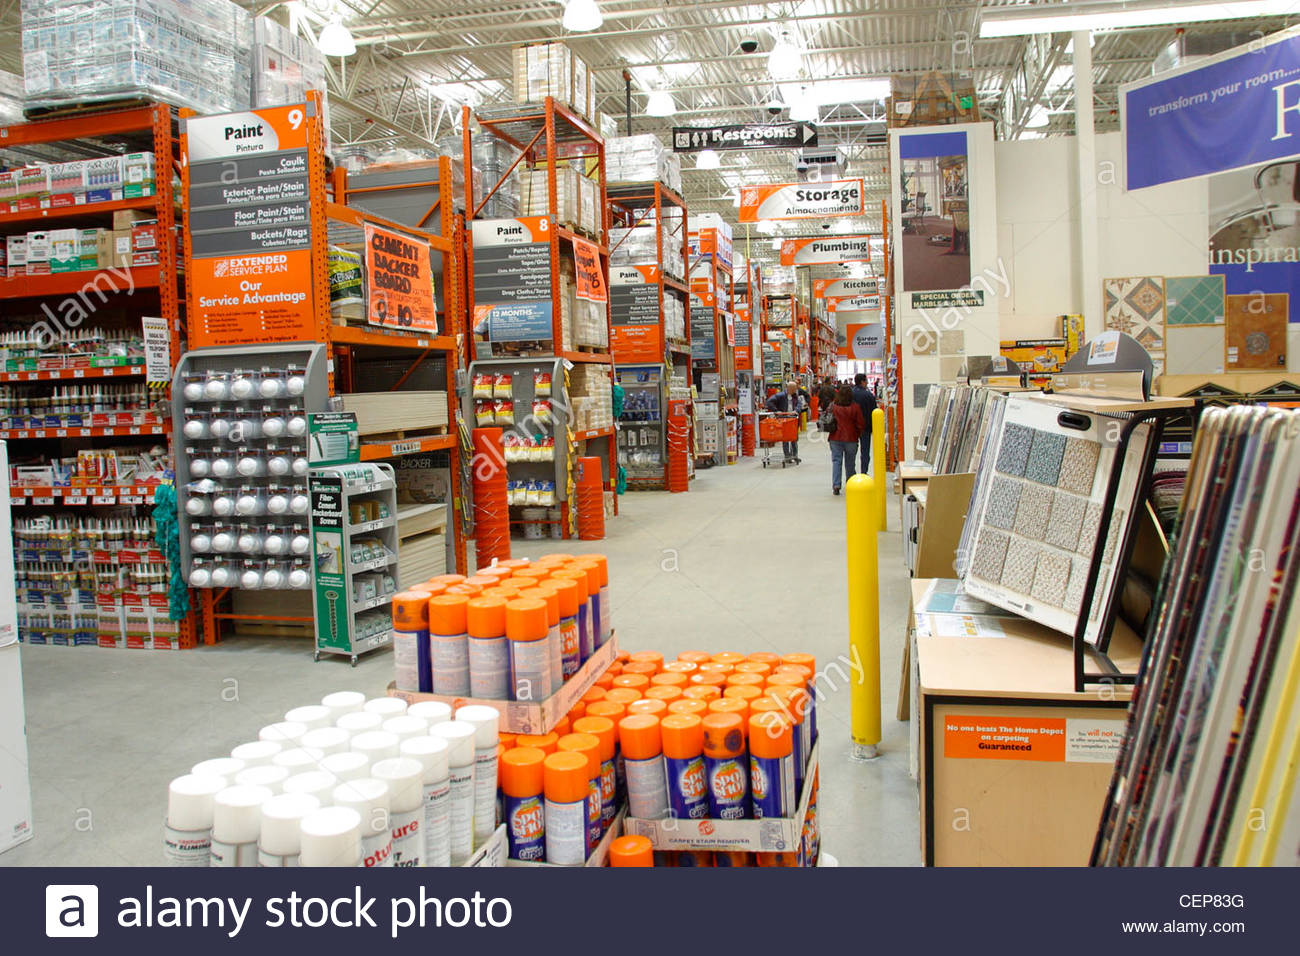 interior of home depot home improvement store CEP83G